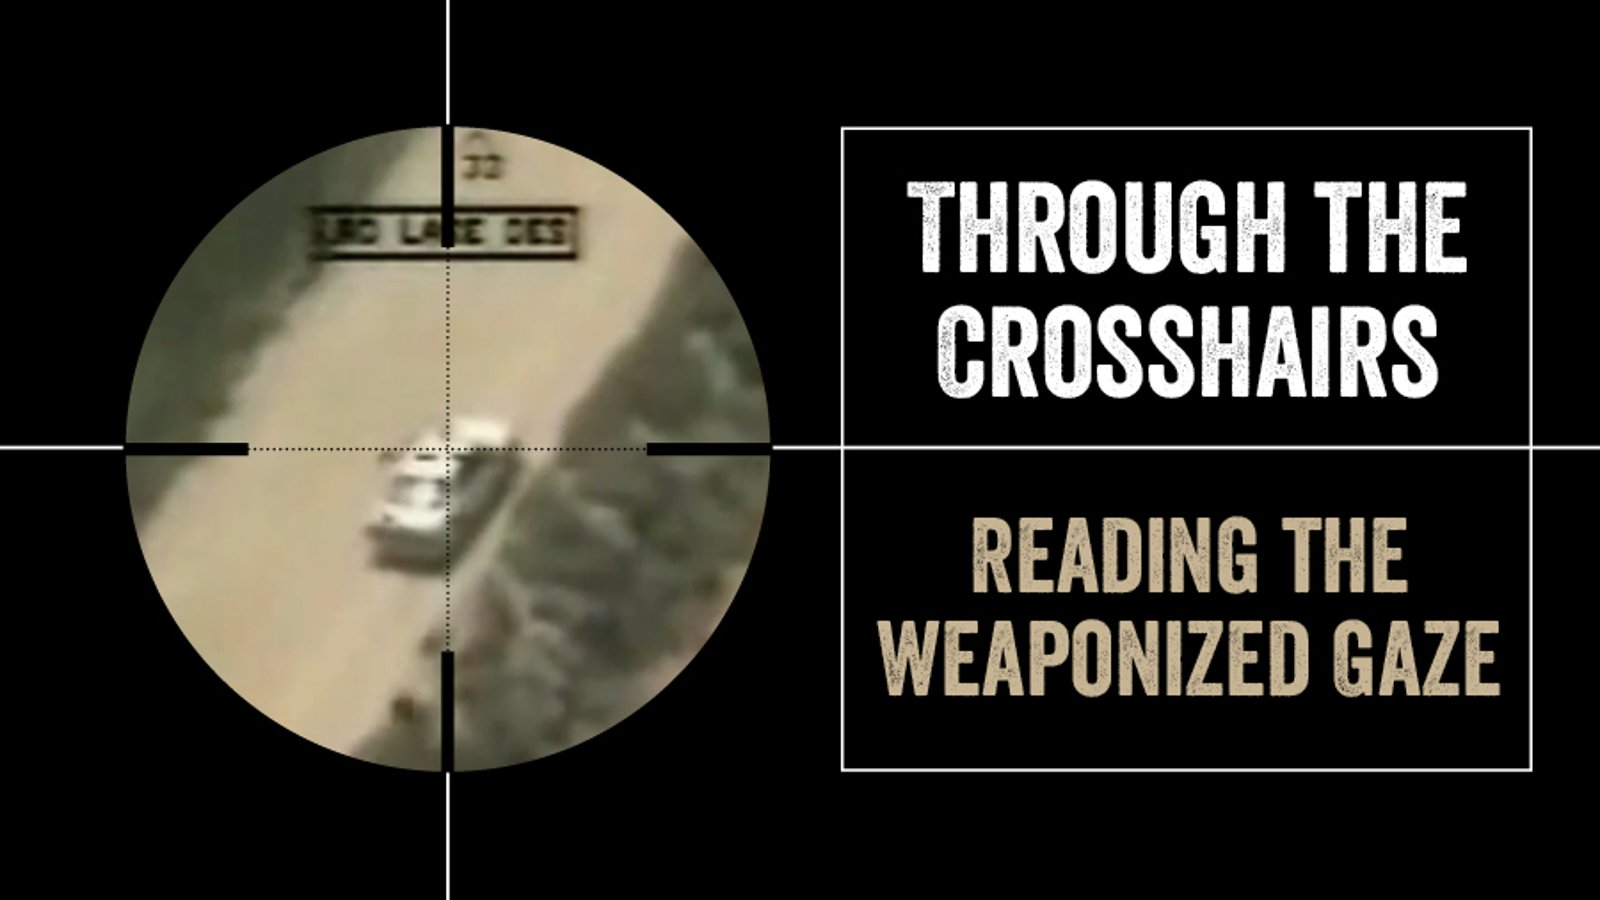 Through the Crosshairs - Reading the Weaponized Gaze